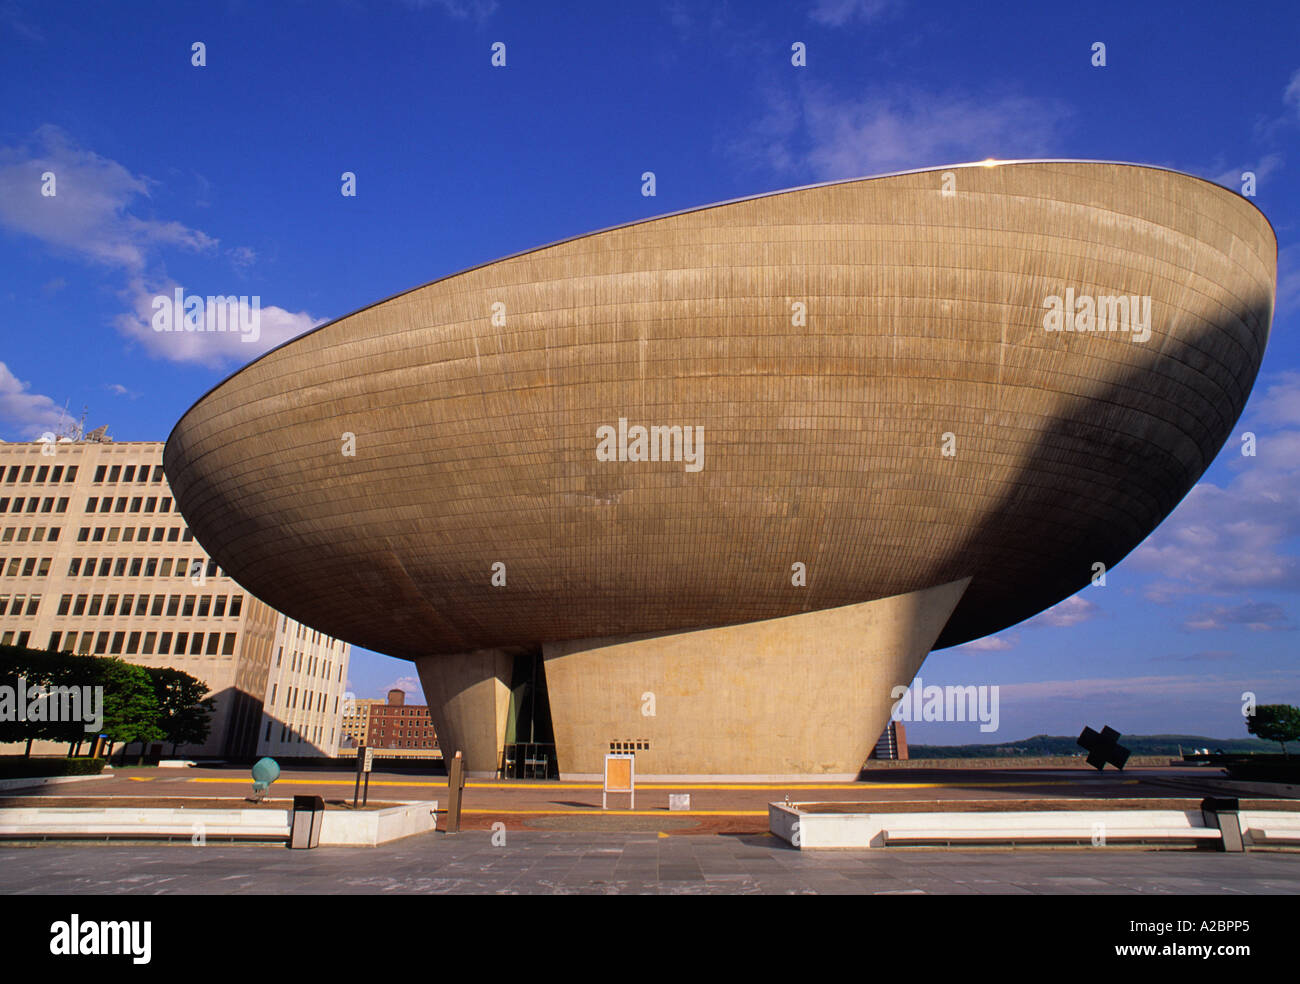 USA Albany New York The State The Center For The Performing Arts The Egg - Stock Image